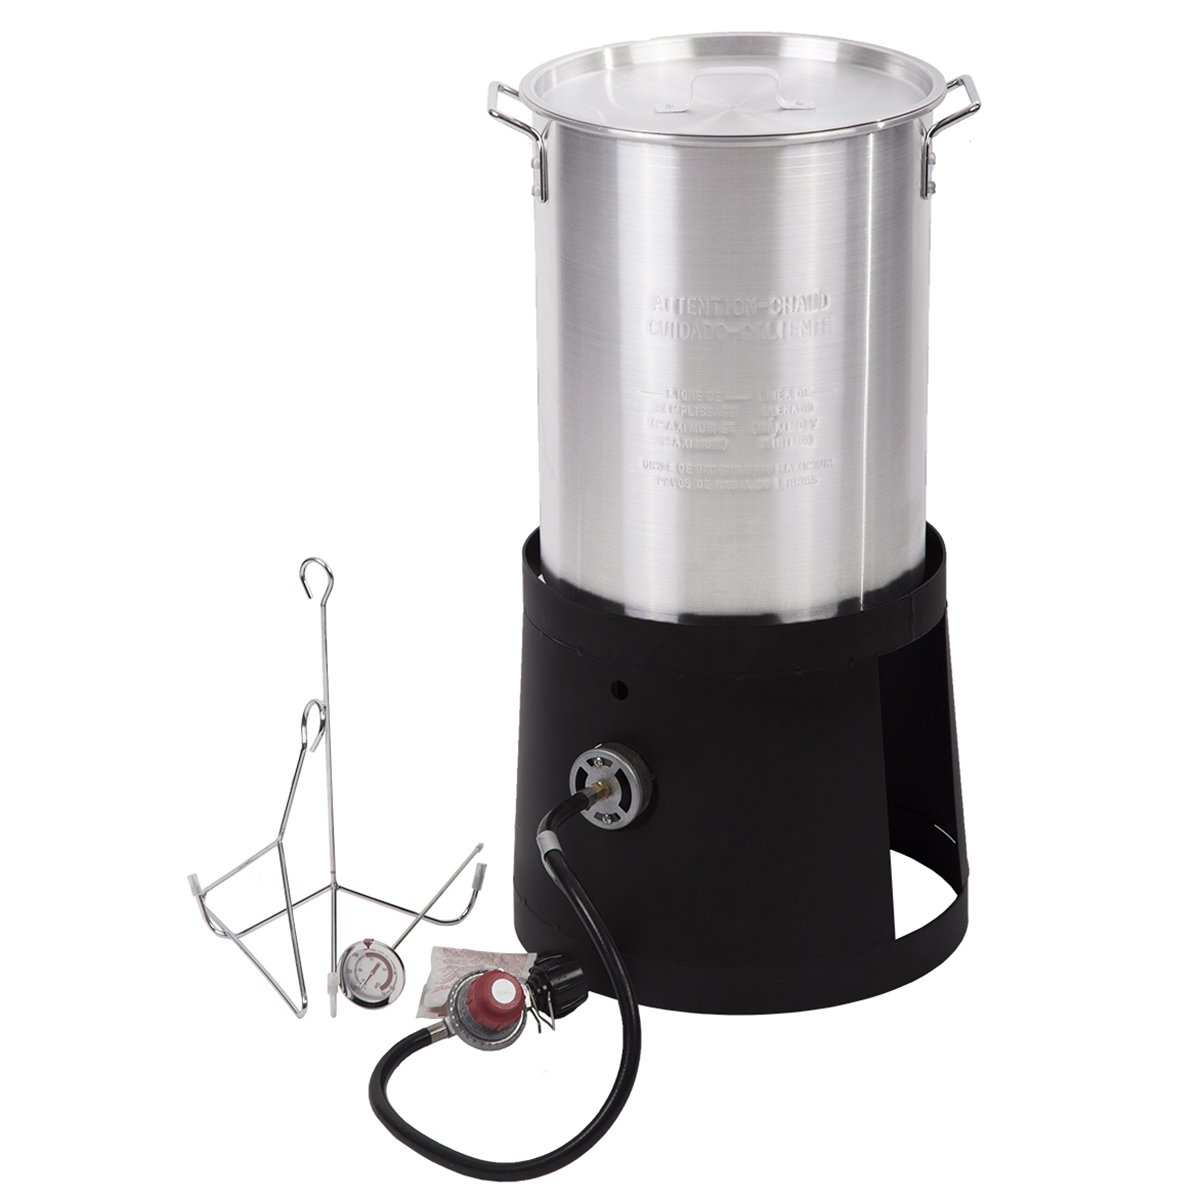 FDW Portable Propane Cooker with 30-Quart Outdoor Turkey Fryer Kit Aluminum Pot by FDW